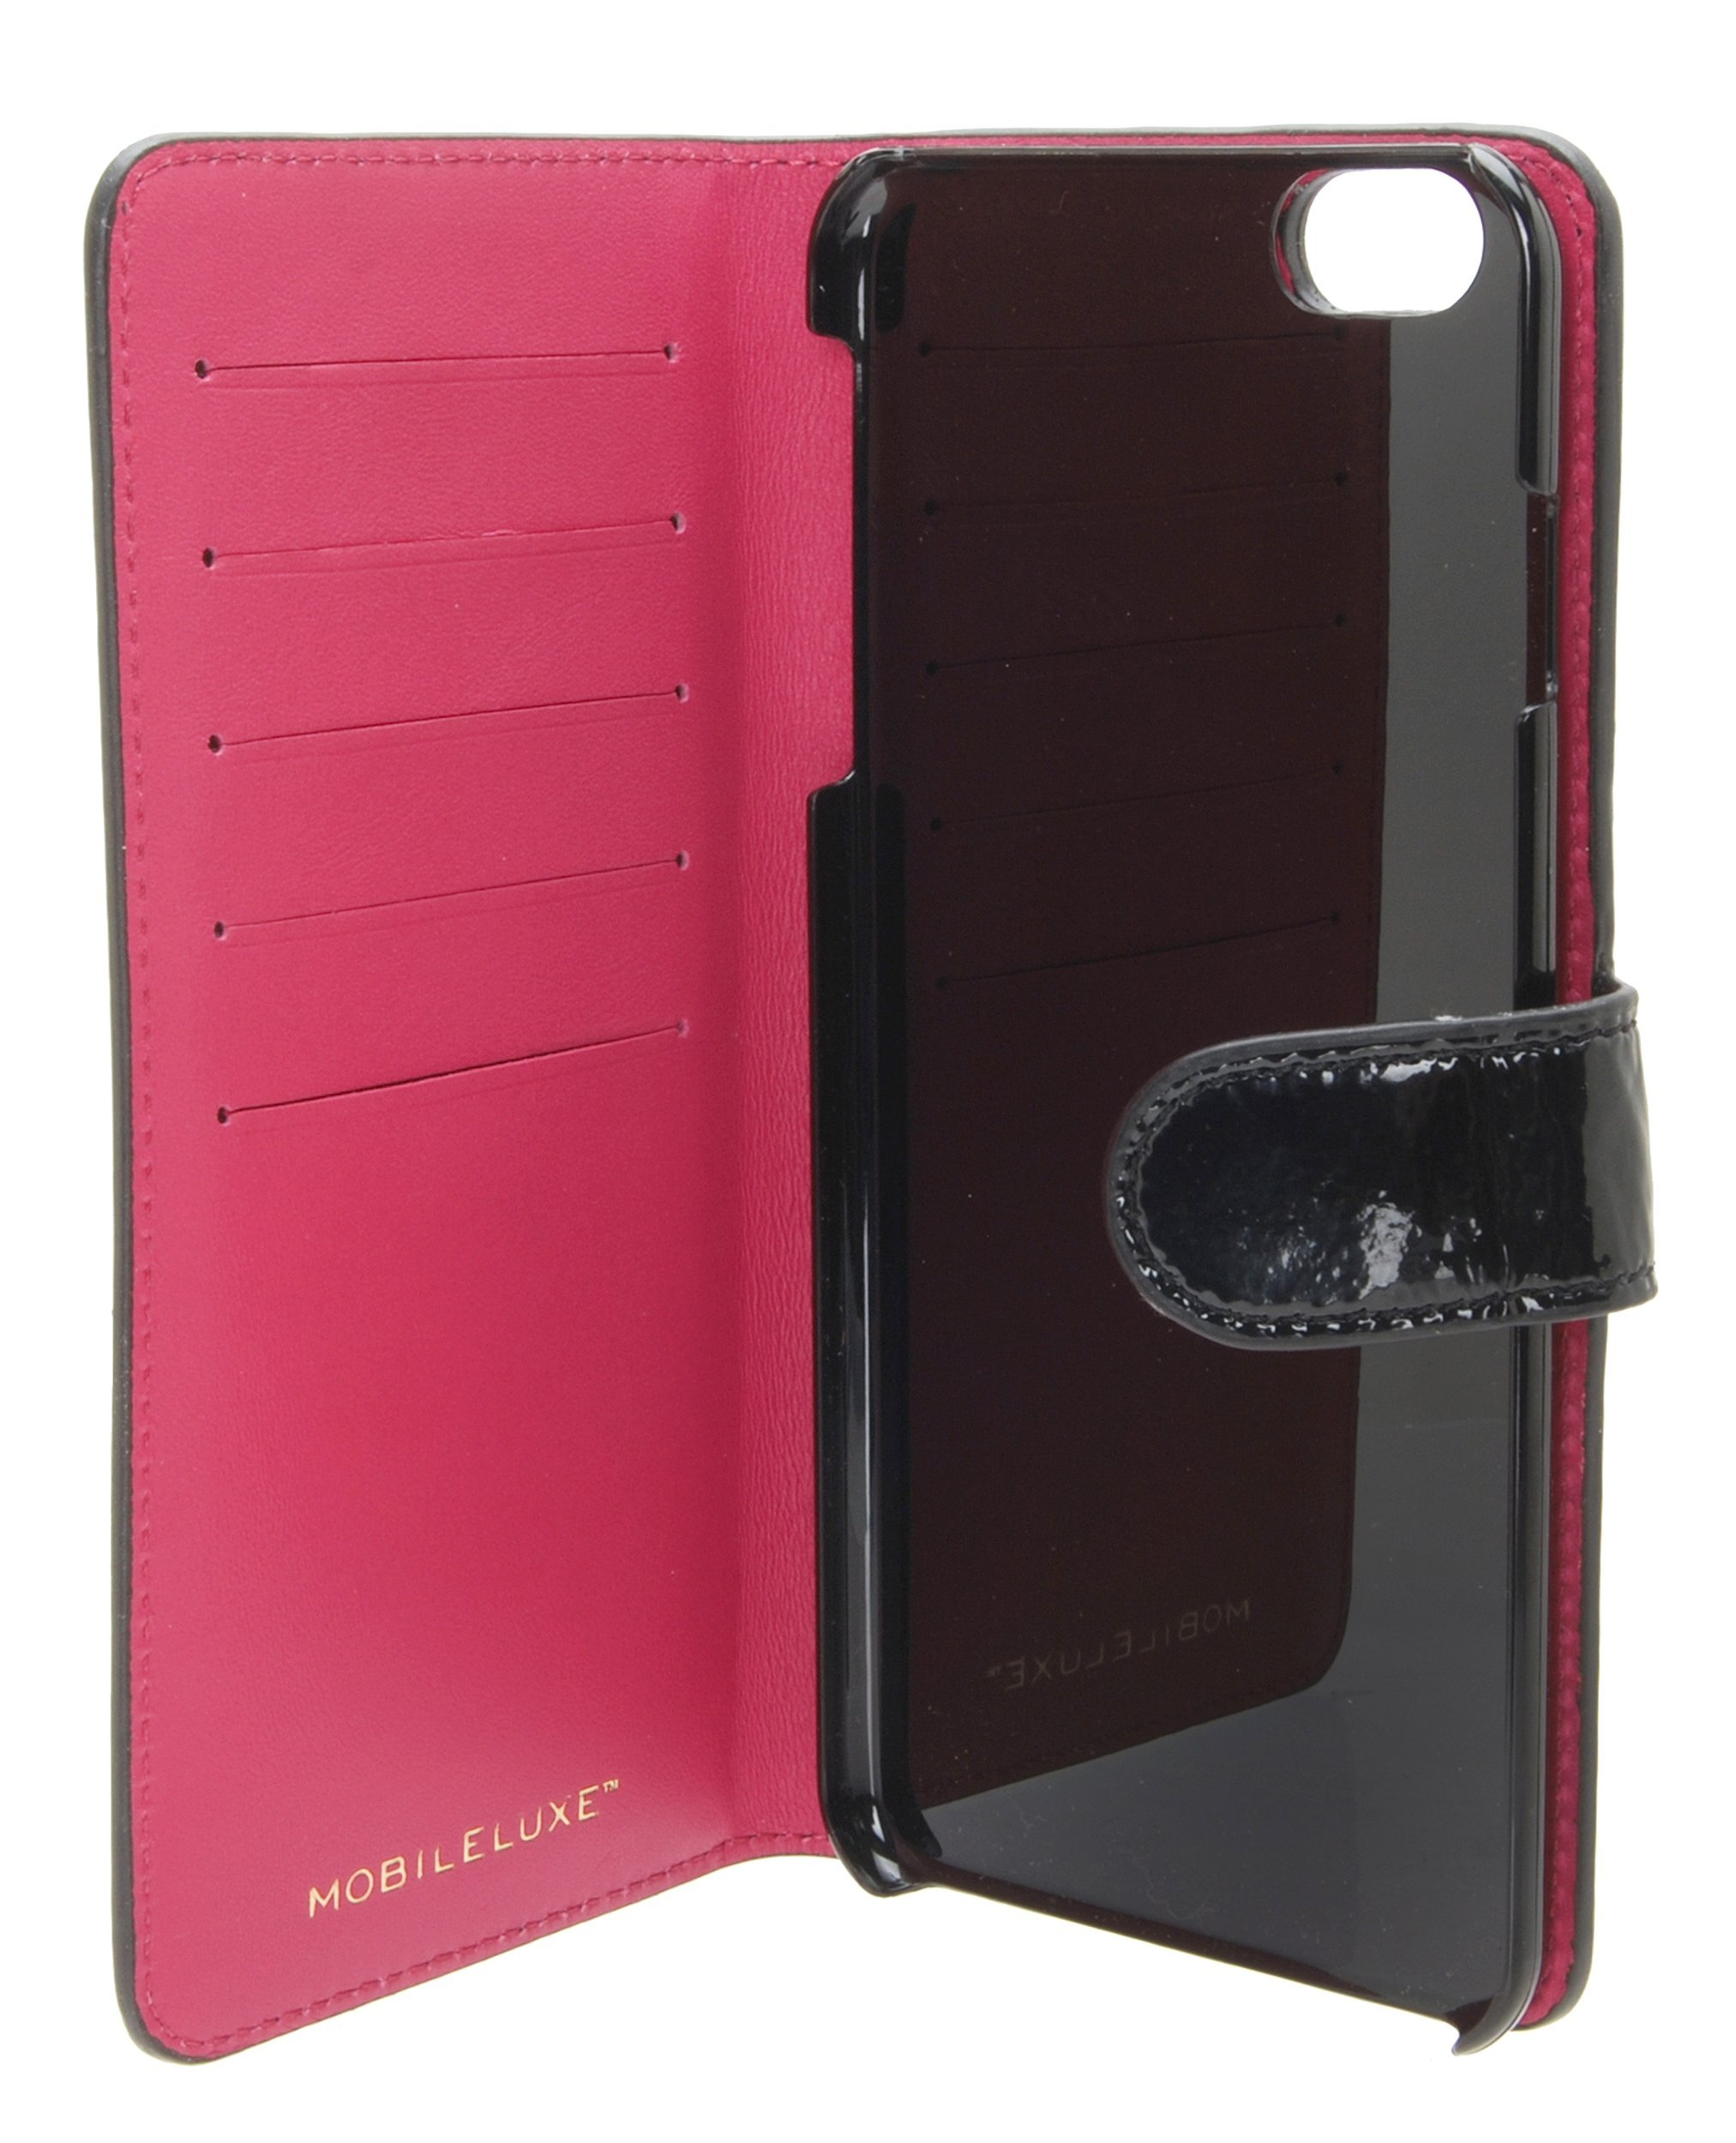 MOBILELUXE Patent Leather Wallet Phone Case for iPhone 6 Plus & 6s Plus - Patent Black/Fuchsia by MOBILELUXE (Image #4)